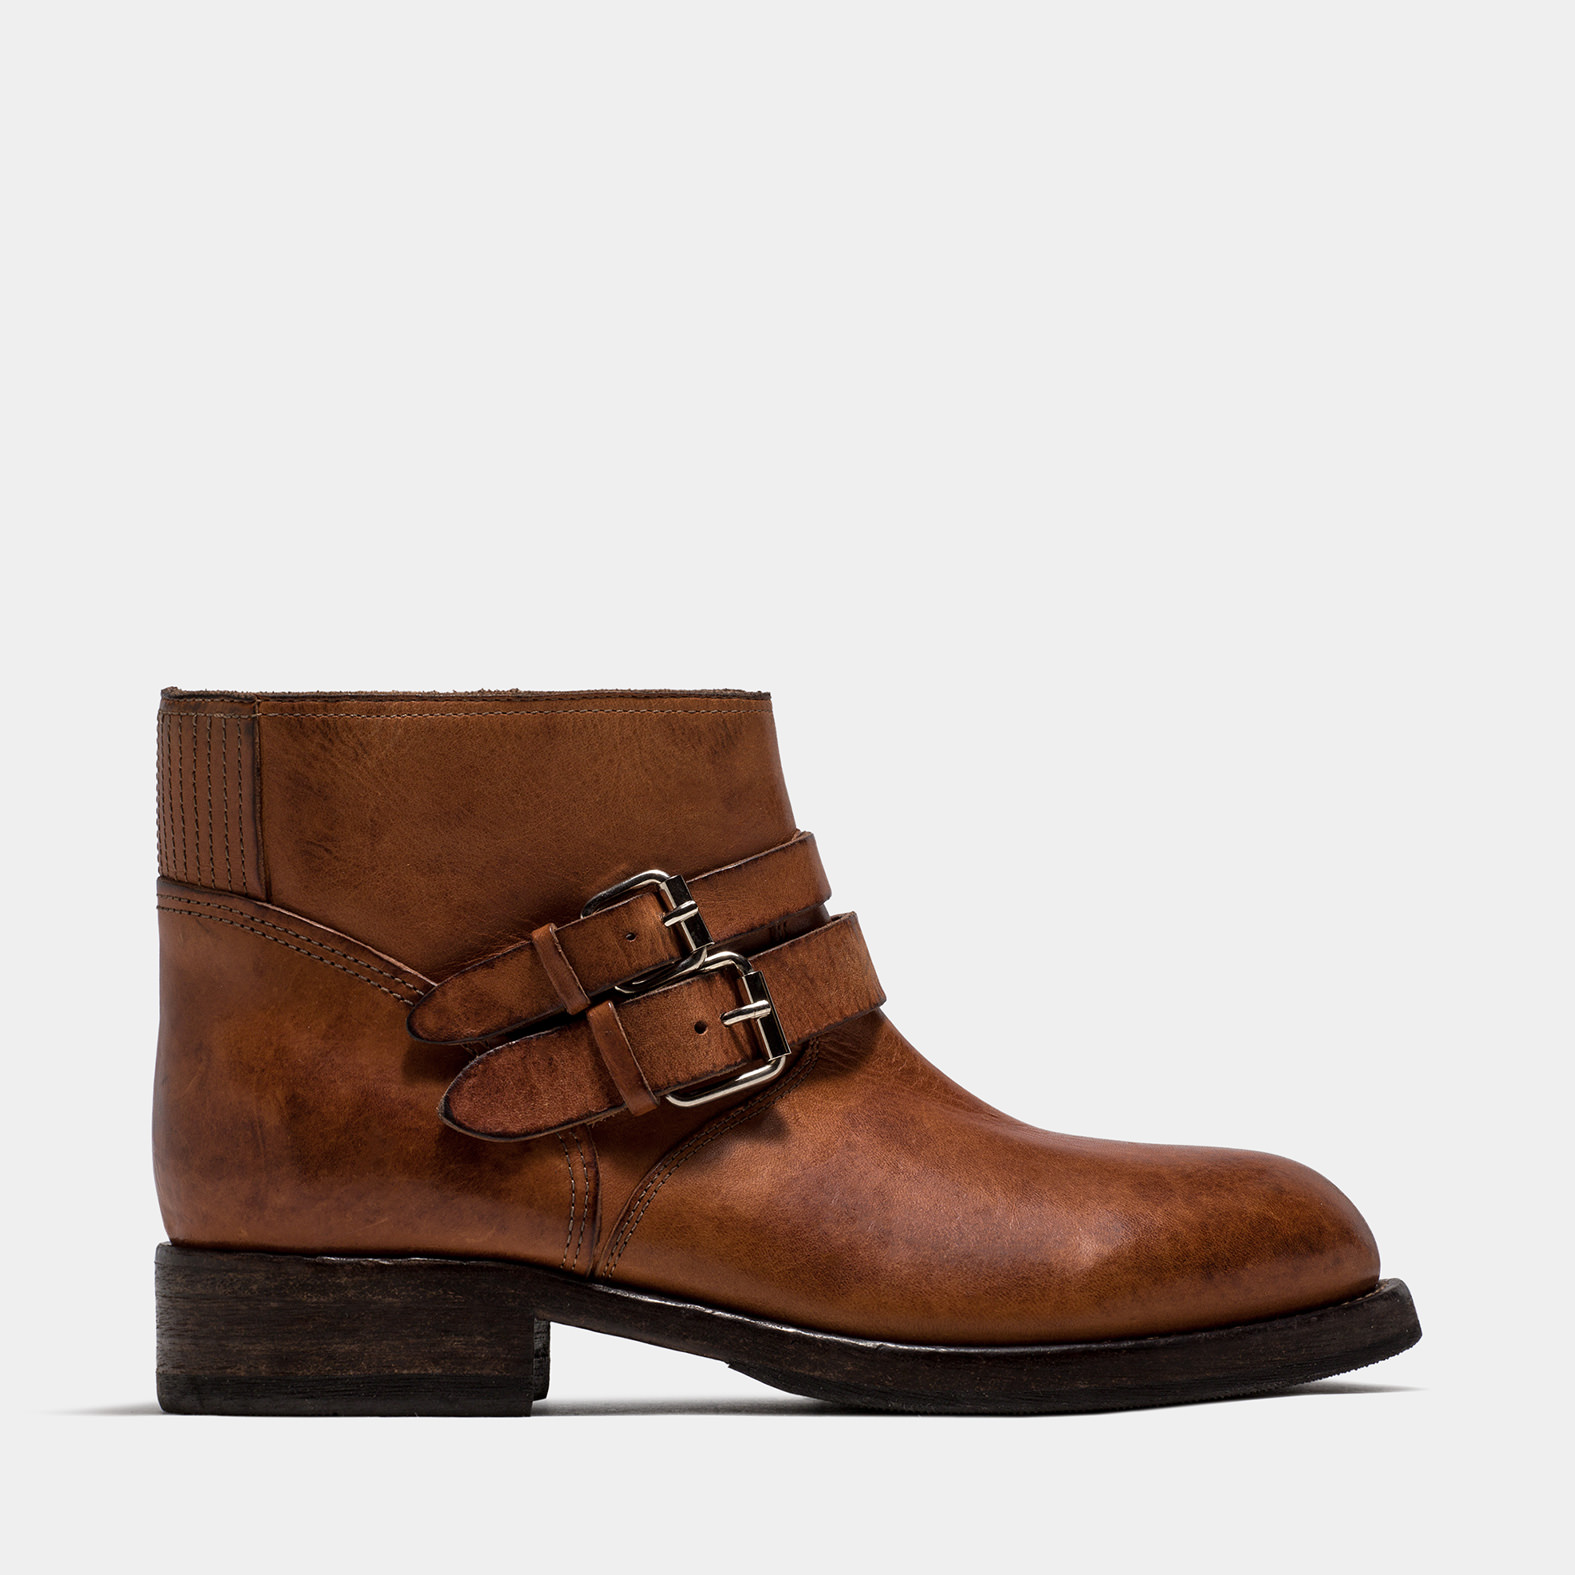 BUTTERO: LOU BIKER ANKLE BOOTS IN NATURAL BROWN LEATHER